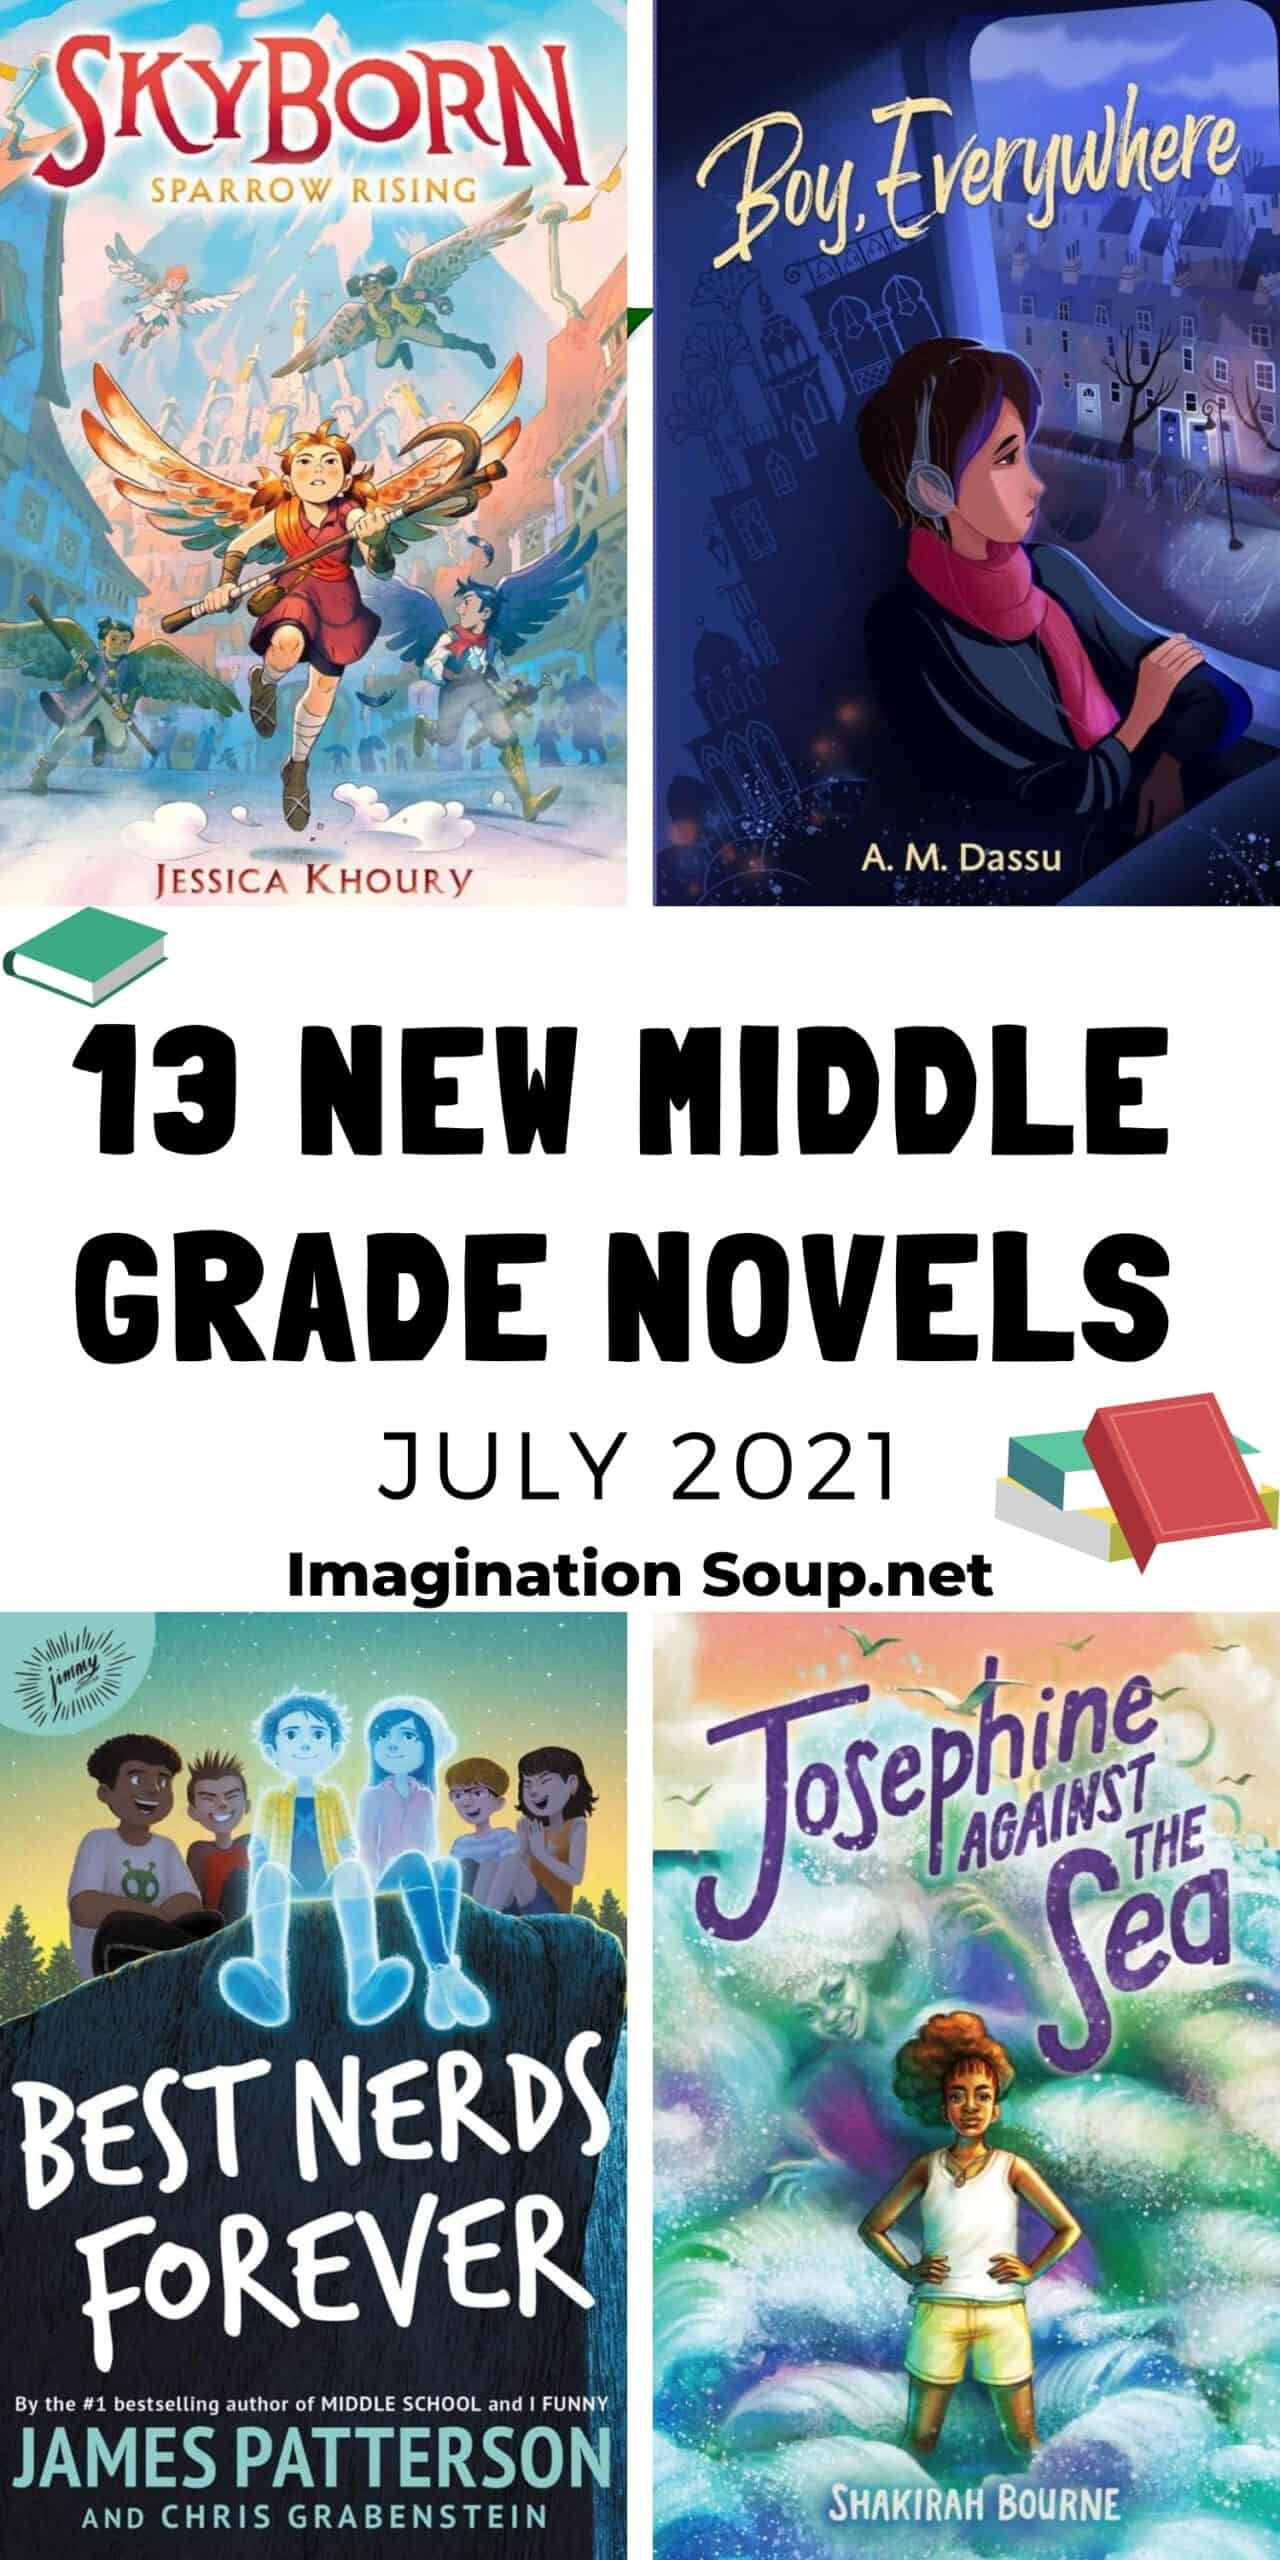 13 new middle grade books for kids, July 2021